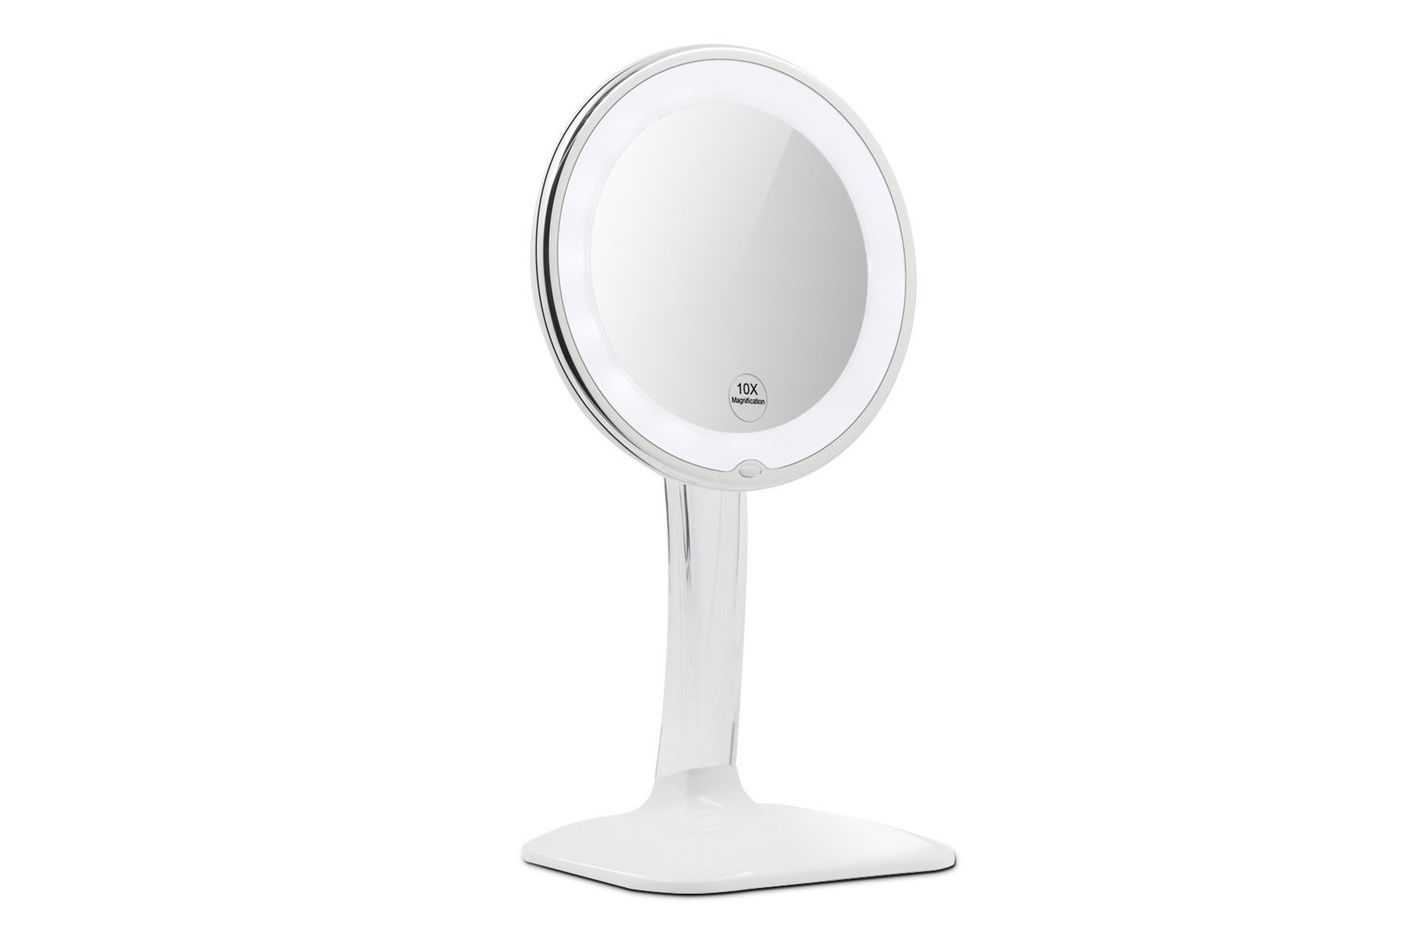 lights fbfaedddbfe warm led lighting mirror subtle dressing diy with natural vanity large table light lamps lighted hollywood makeup ikea beautify trifold bedside